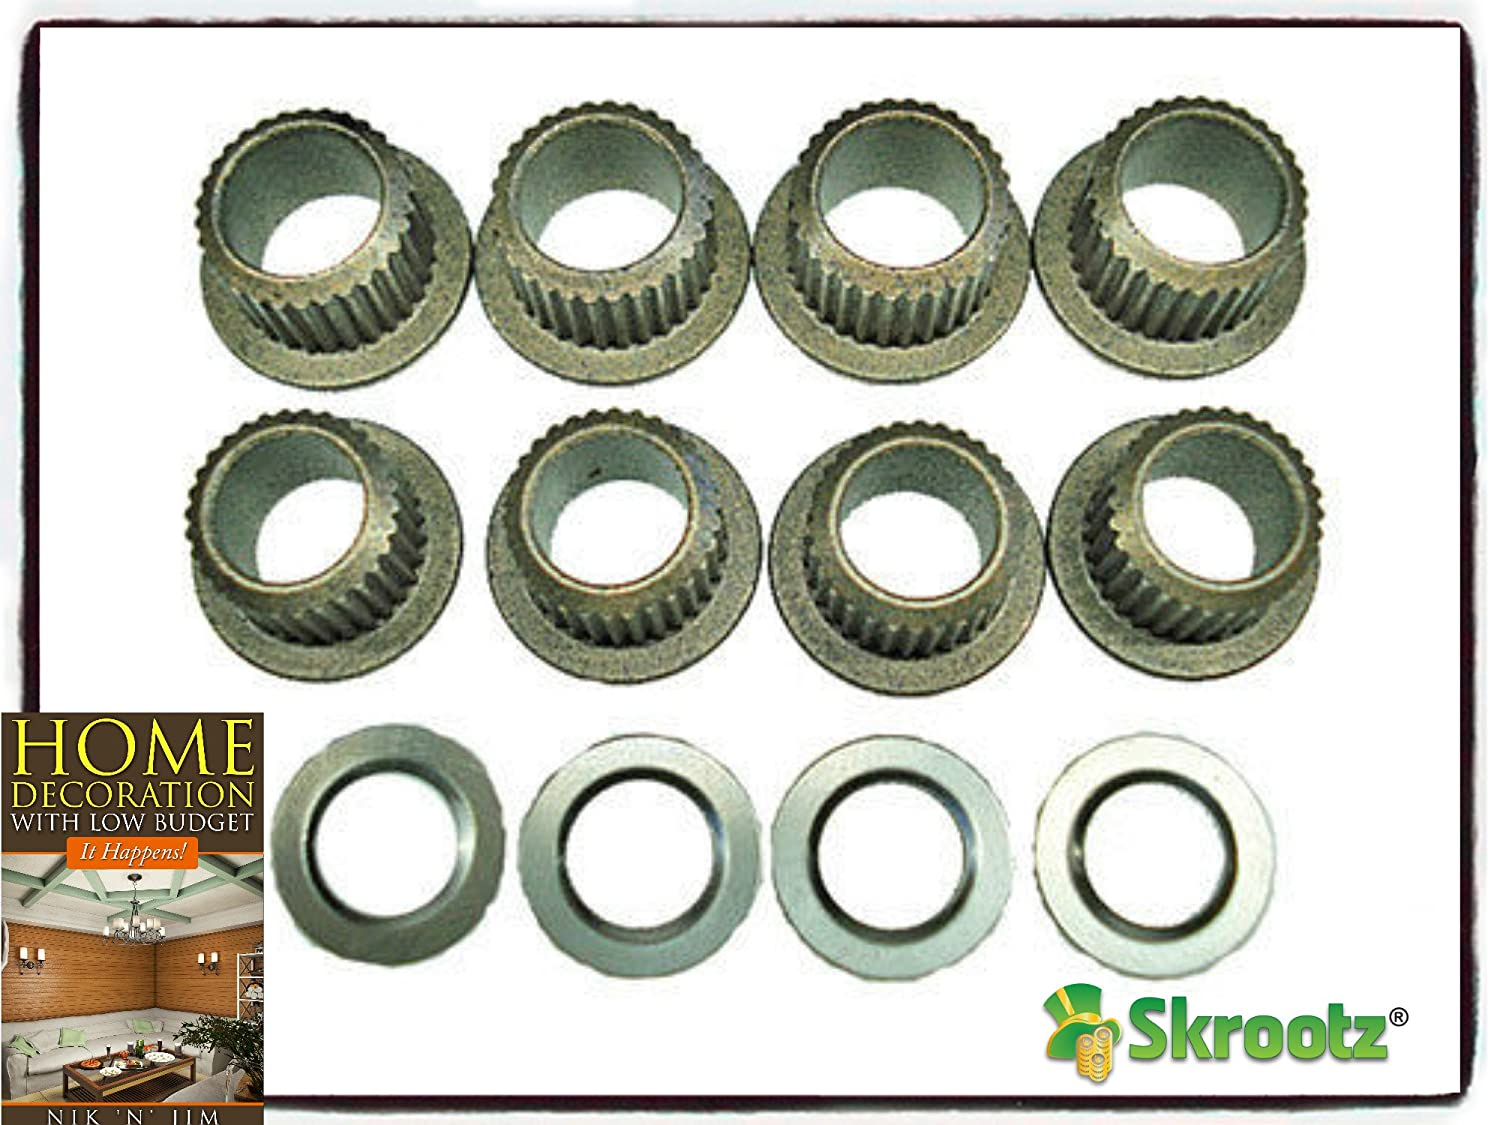 Amazon.com: 95 96 97 98 99 00 01 02 03 04 Chevy S10 GMC S15 door hinge pin bushing kit by Skroutz: Automotive